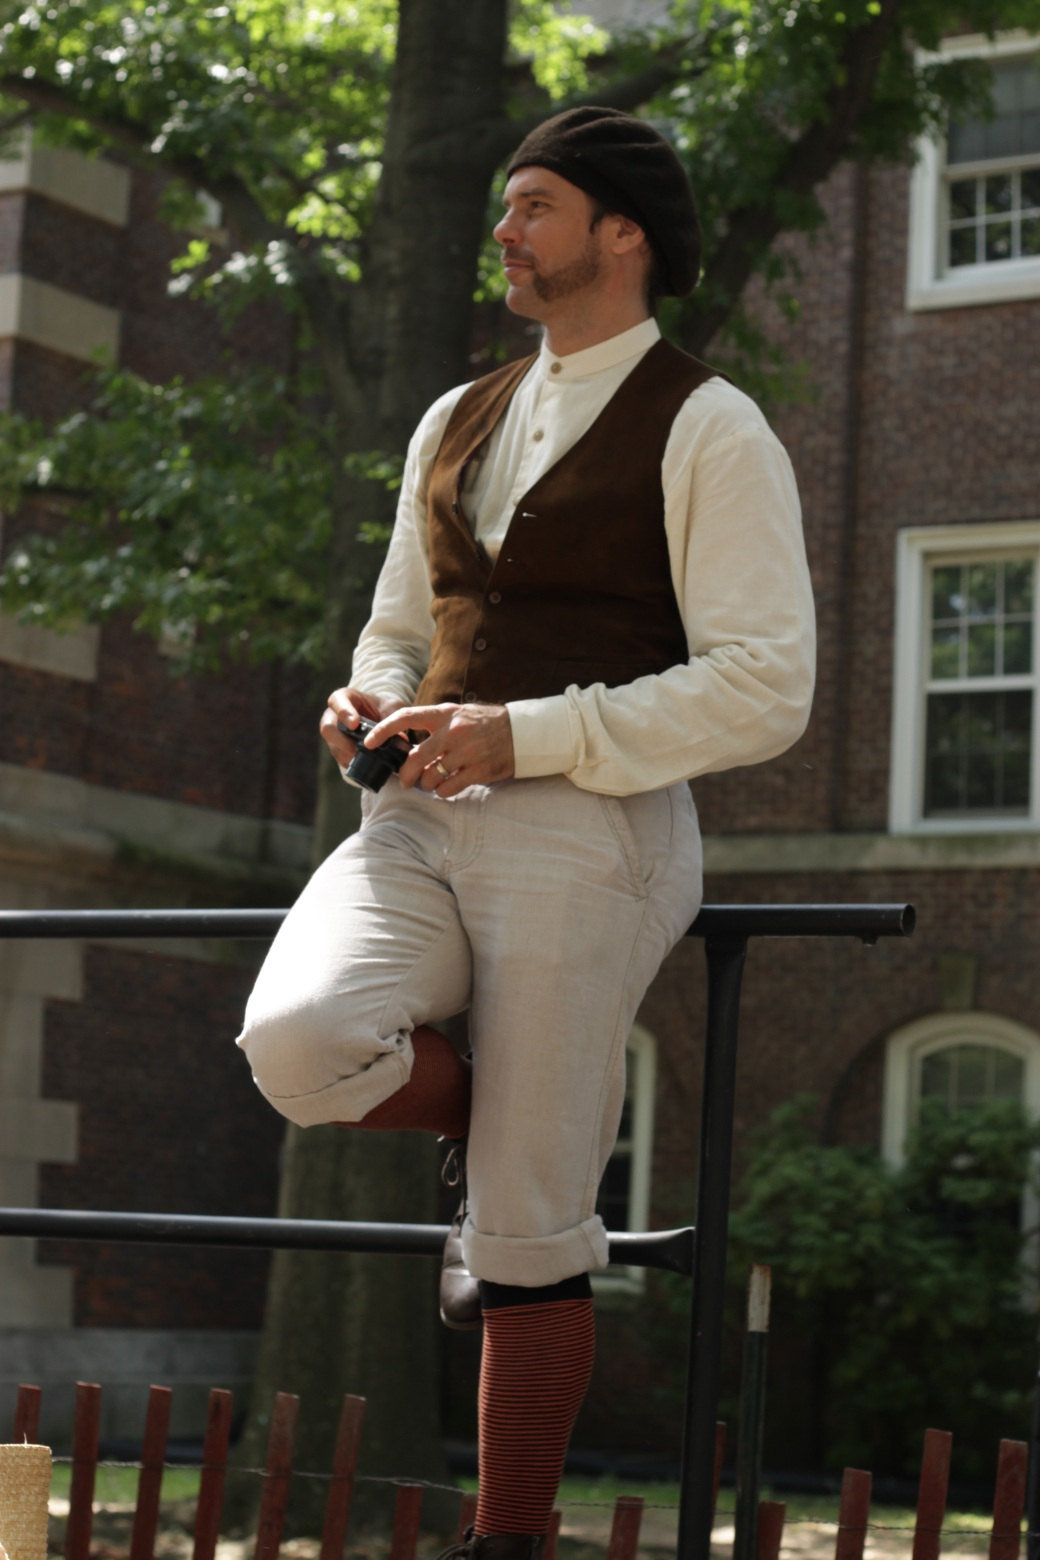 new york city governors island jazz age lawn party august 17 2014 36